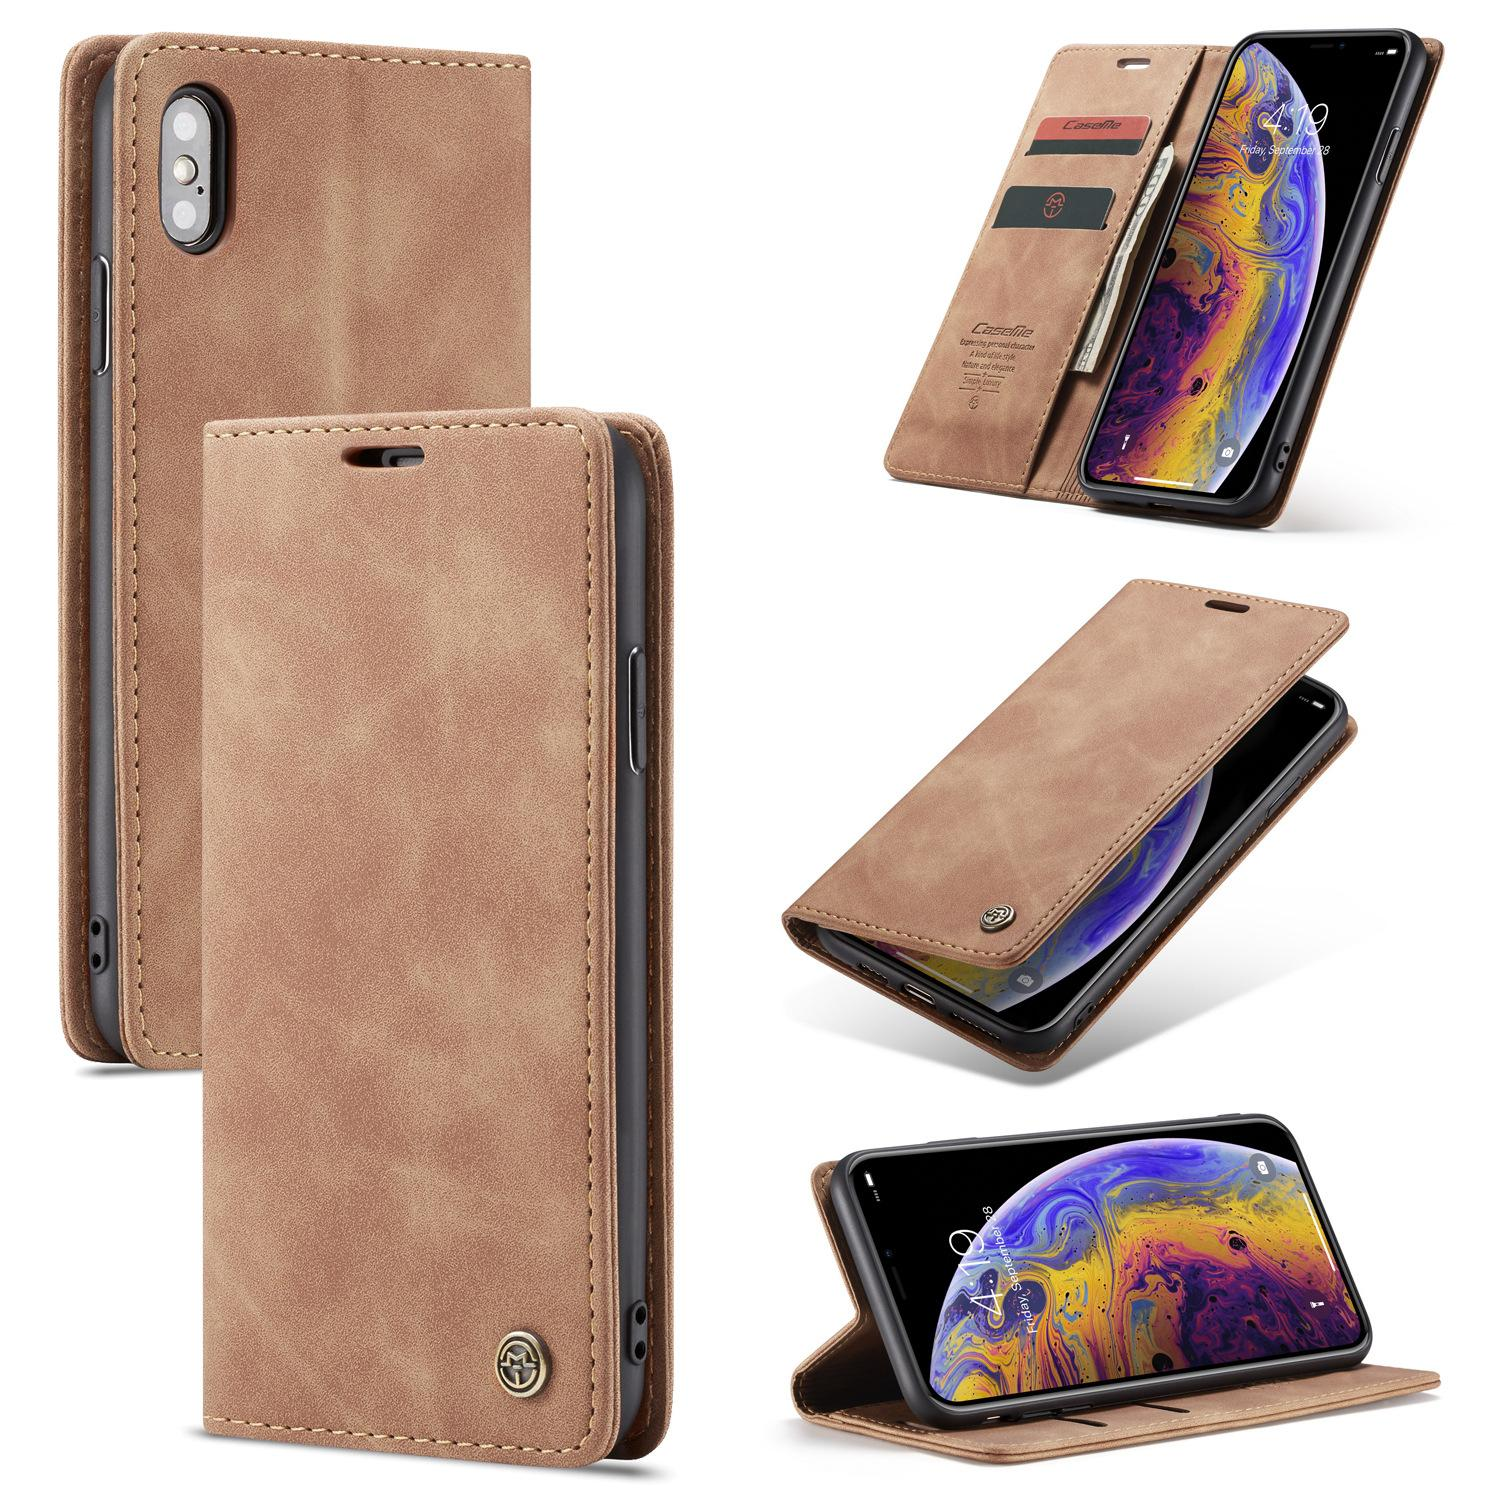 Luxury PU+TPU Hybrid Leather Wallet Protection Case for Apple iPhone 11 Pro Max Flip Cover 2 card solt With Card Holder